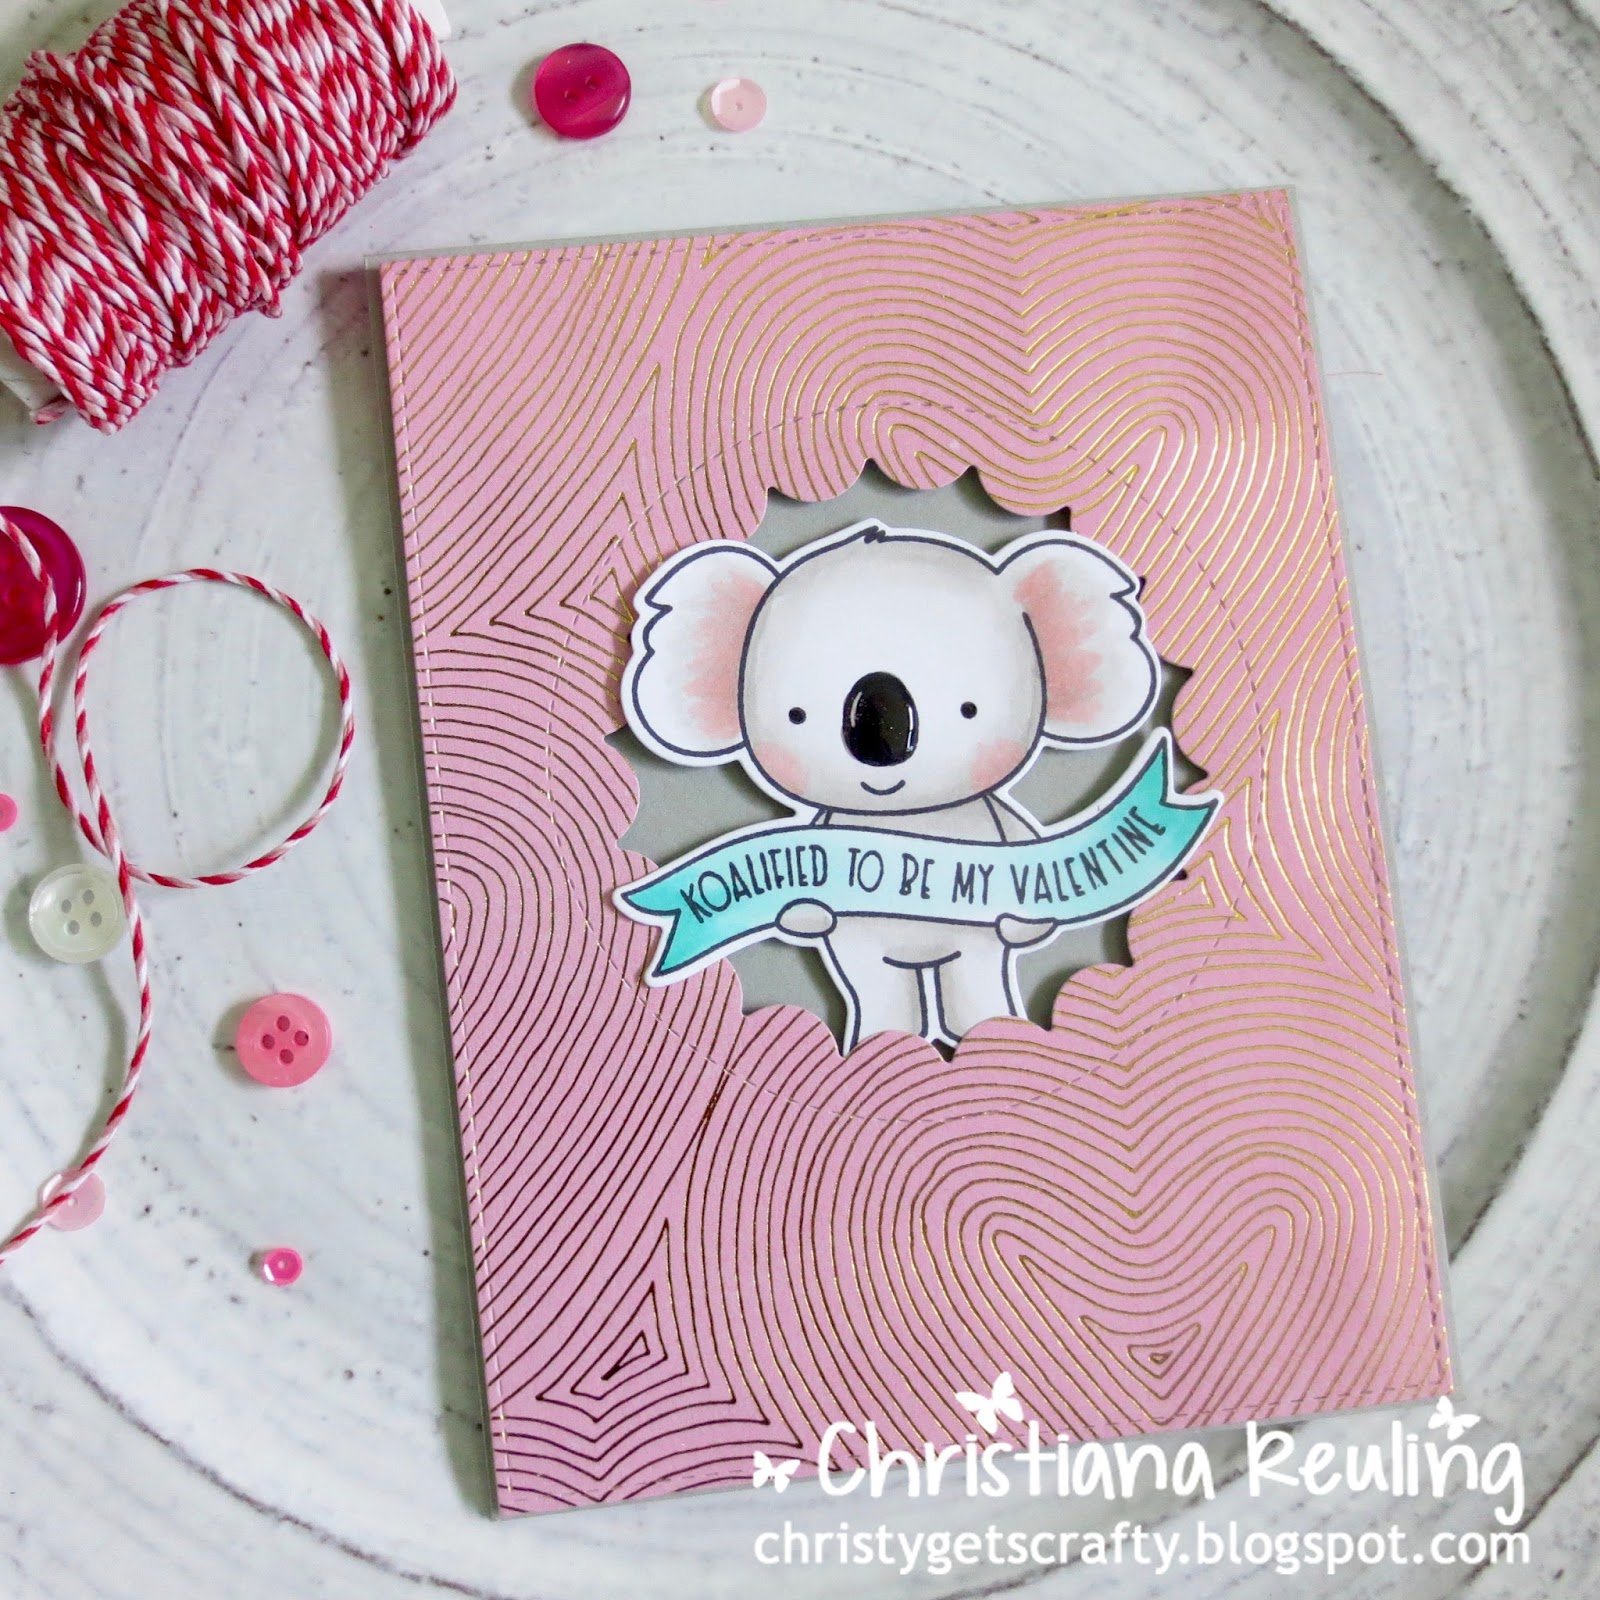 christy gets crafty to a koality friend valentine card series 7